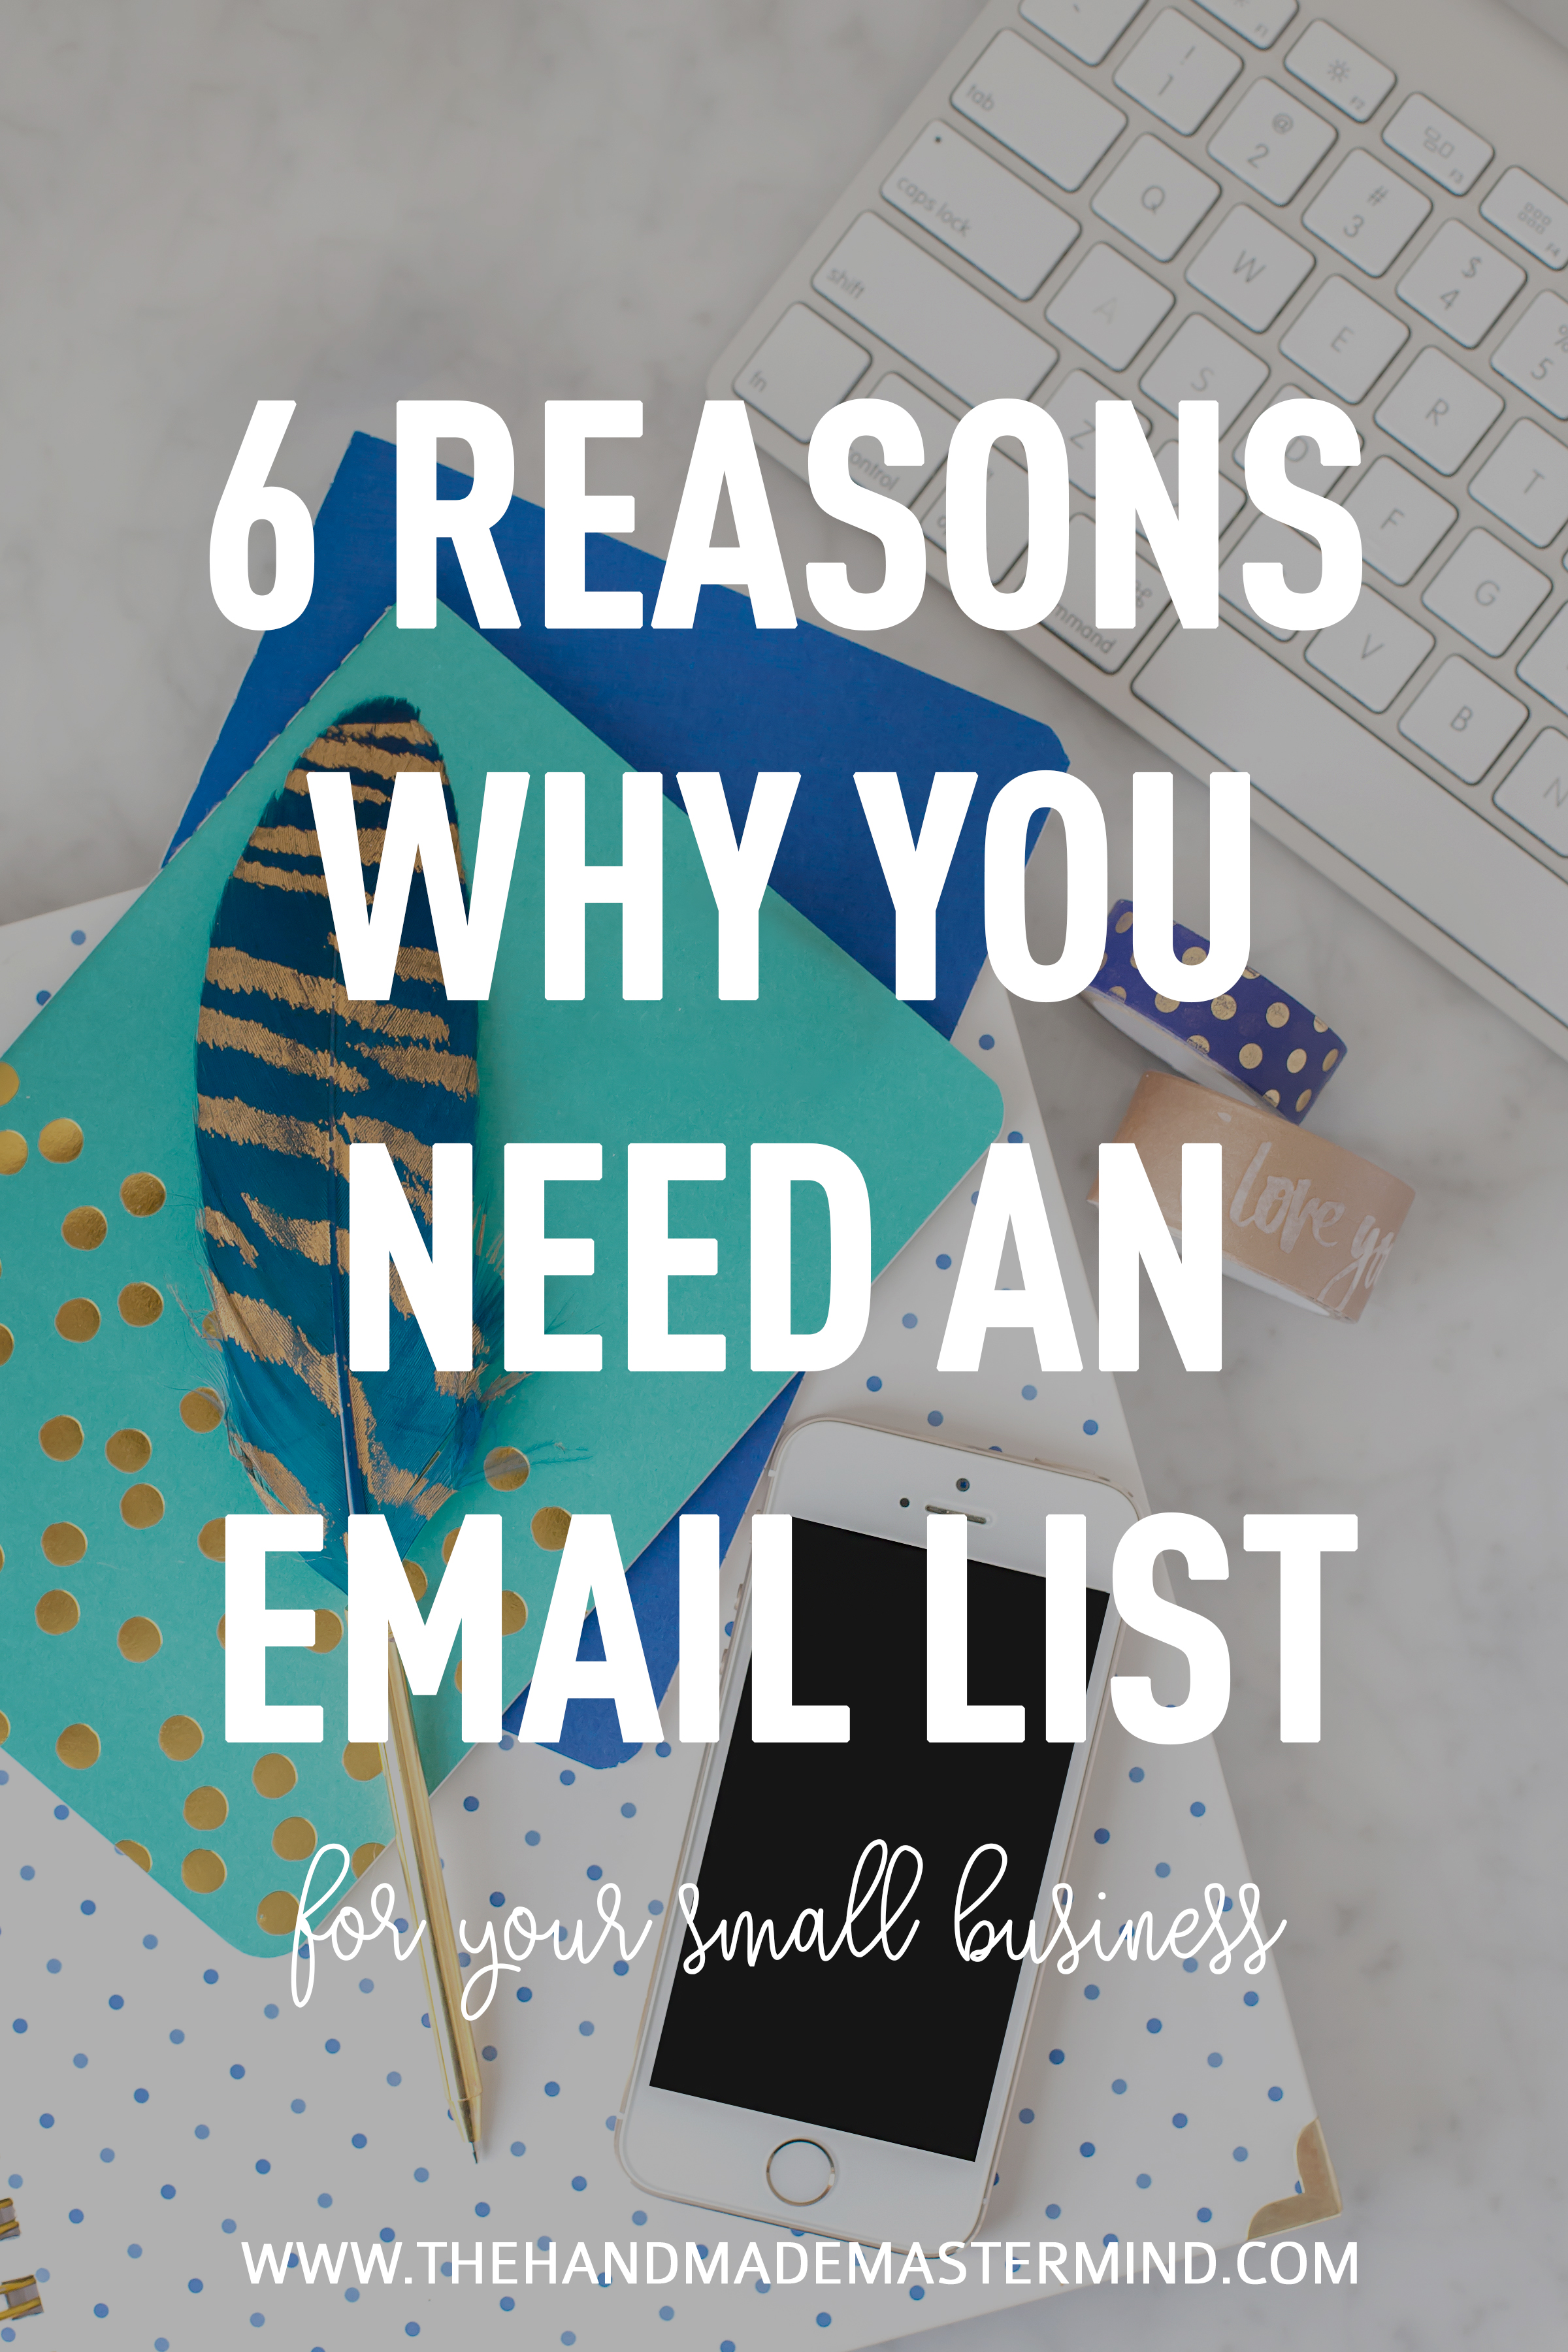 Start and email list